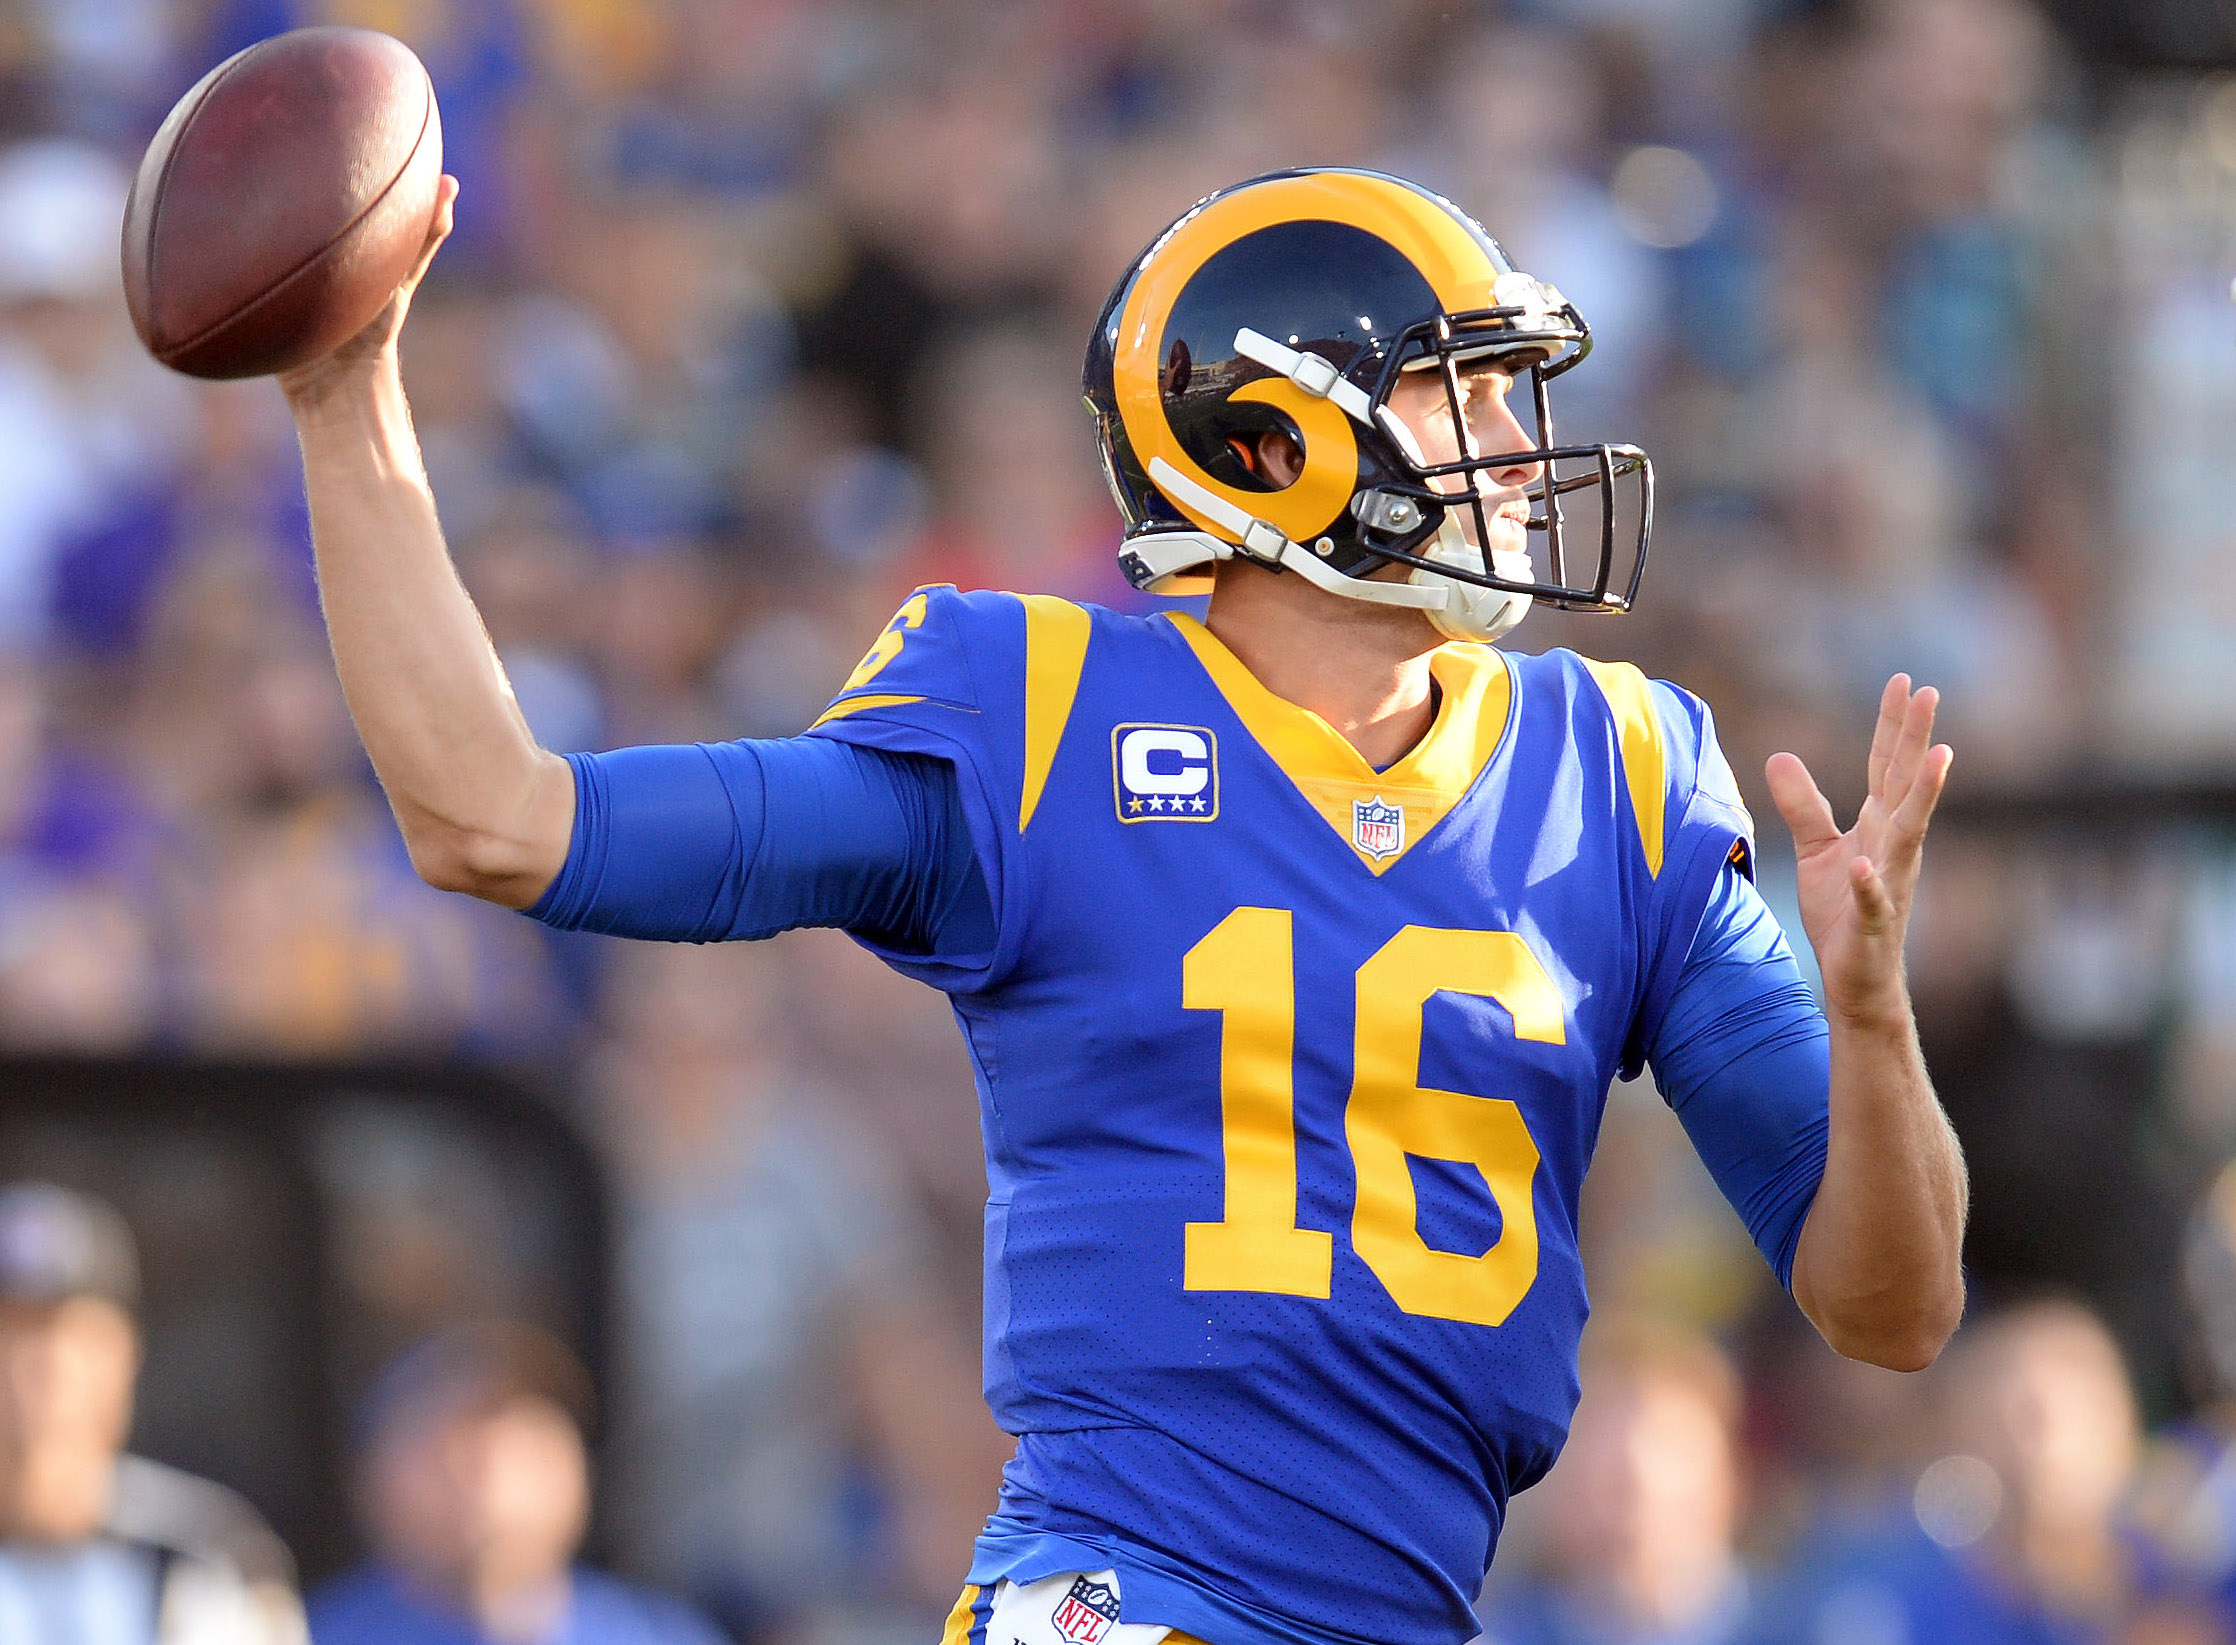 Look: Jared Goff's first-half passing chart is absolutely ridiculous